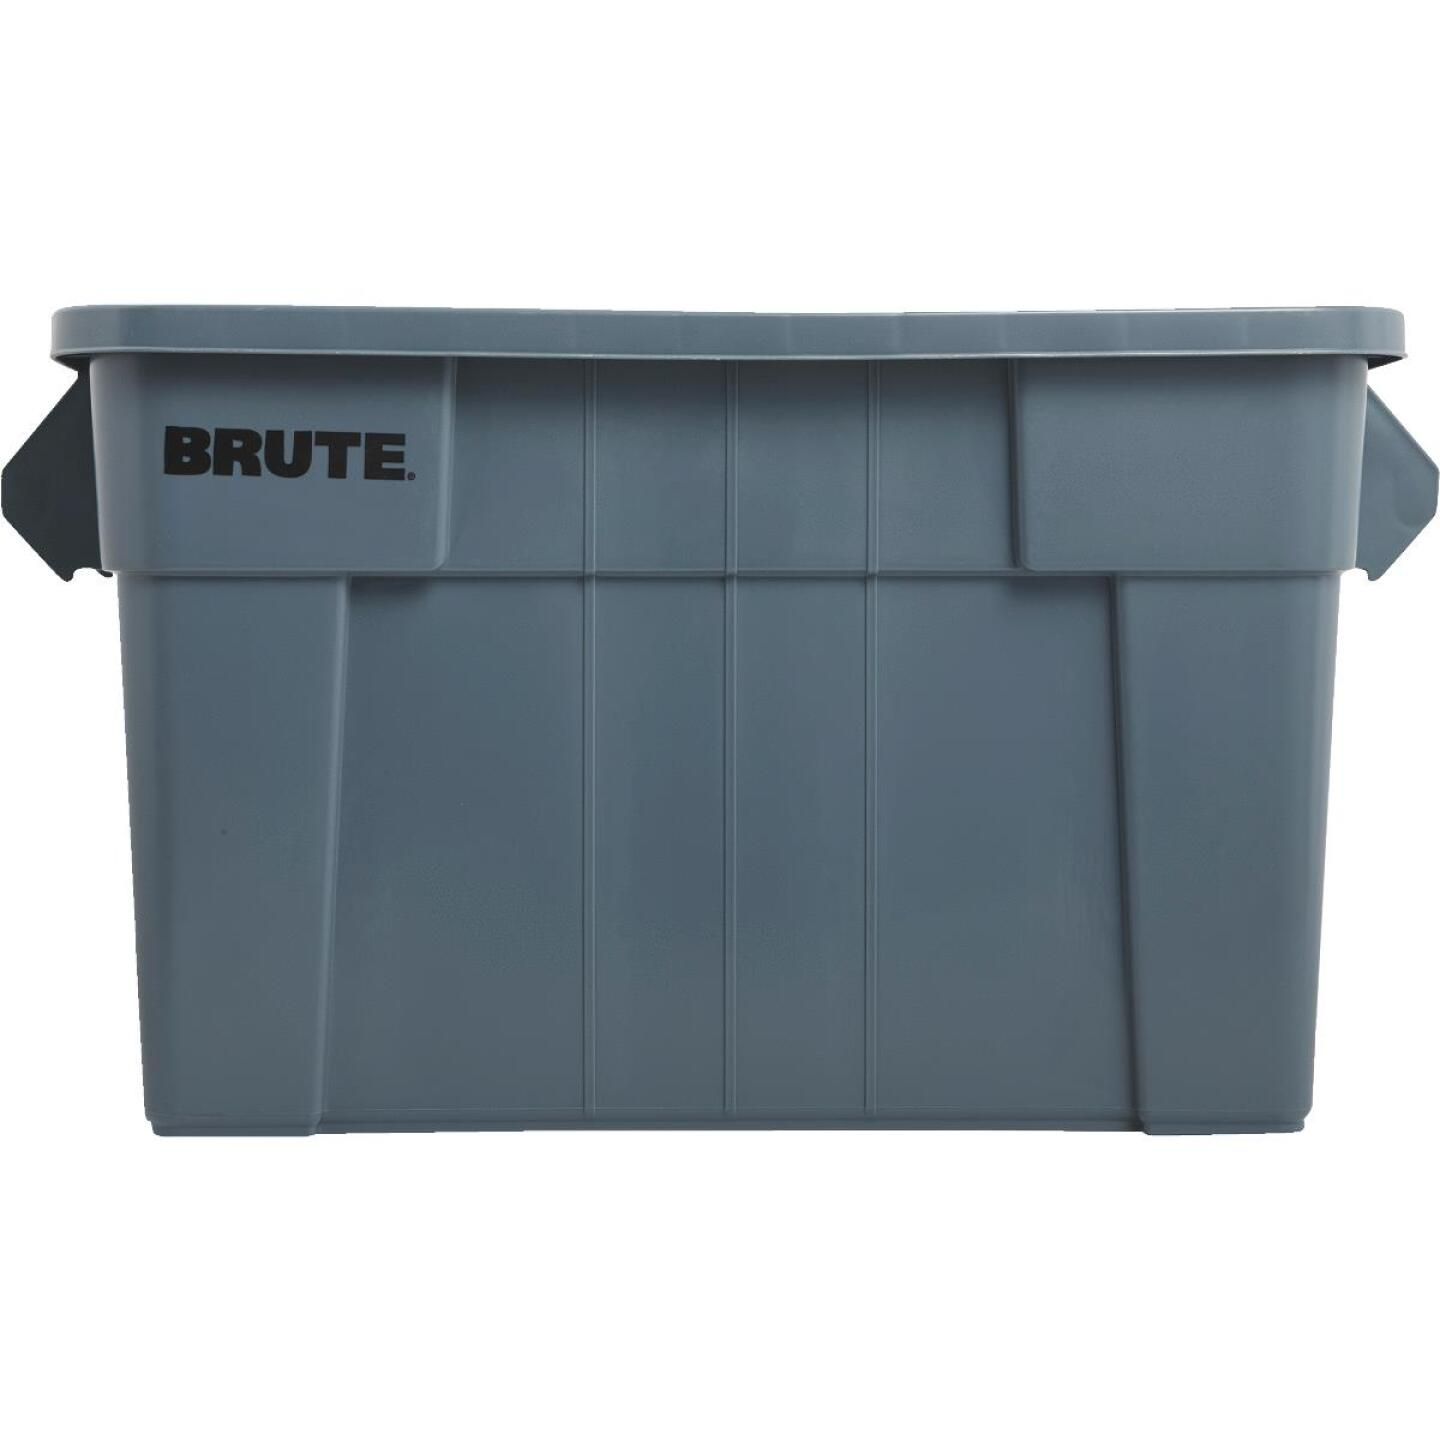 Rubbermaid 20 Gal. Gray Commercial Brute Storage Tote with Lid Image 2